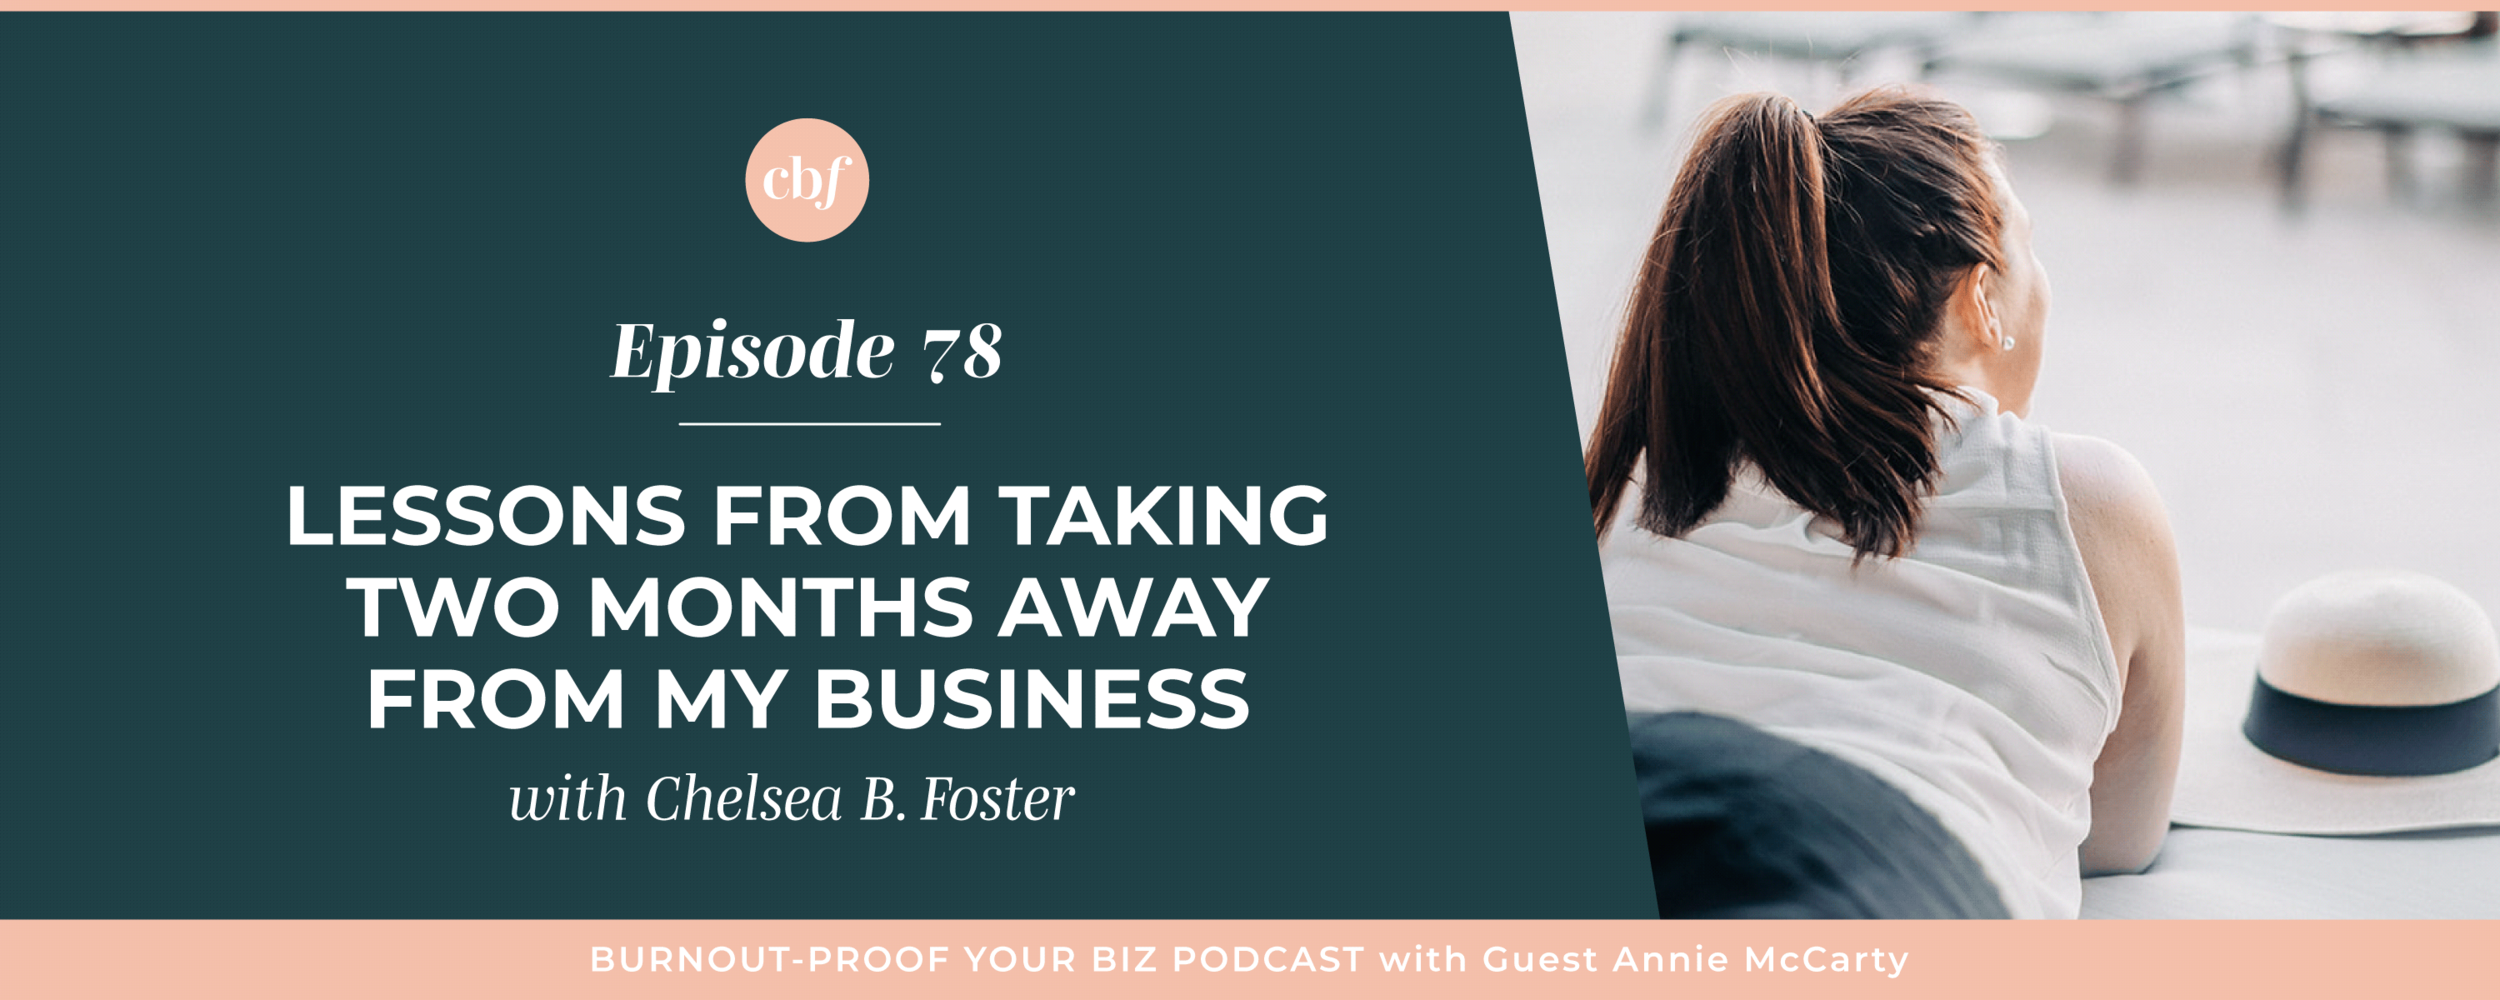 Burnout-Proof Your Biz Podcast with Chelsea B Foster | Episode 078 - Lesson from Taking TWO Months Away from My Business - how to plan for sabbaticals, leaves of absences, and even emergencies before they happen  |||  burnout-proof your business podcast | workflow & productivity specialist | planning for time off | planning for emergencies before they happen | systems to let you take time off | systems for sabbaticals and leaves of absences as an entrepreneur | planning for the worst-case scenarios  |||  chelsea b foster, burnout-proof your biz, running your business your way, business podcasts for solopreneurs, working smarter not harder in your business, best practices for multi-passionate creatives, solopreneurs, and entrepreneurs, what to know when you need to pause your business, systems to help solopreneurs take time off, preparing your online business for emergencies, keeping your business afloat while taking time off, vacationing as an entrepreneur, preventing burnout in your business, calming the chaos of entrepreneur life, defining success on your own terms, best automation tools for solopreneurs, automating the inquiry process for your online business, how to build a team the right way, business advice for multi-passionate creatives, preventing overwhelm in your business, mindfulness as an entrepreneur, clarity journal prompts for entrepreneurs